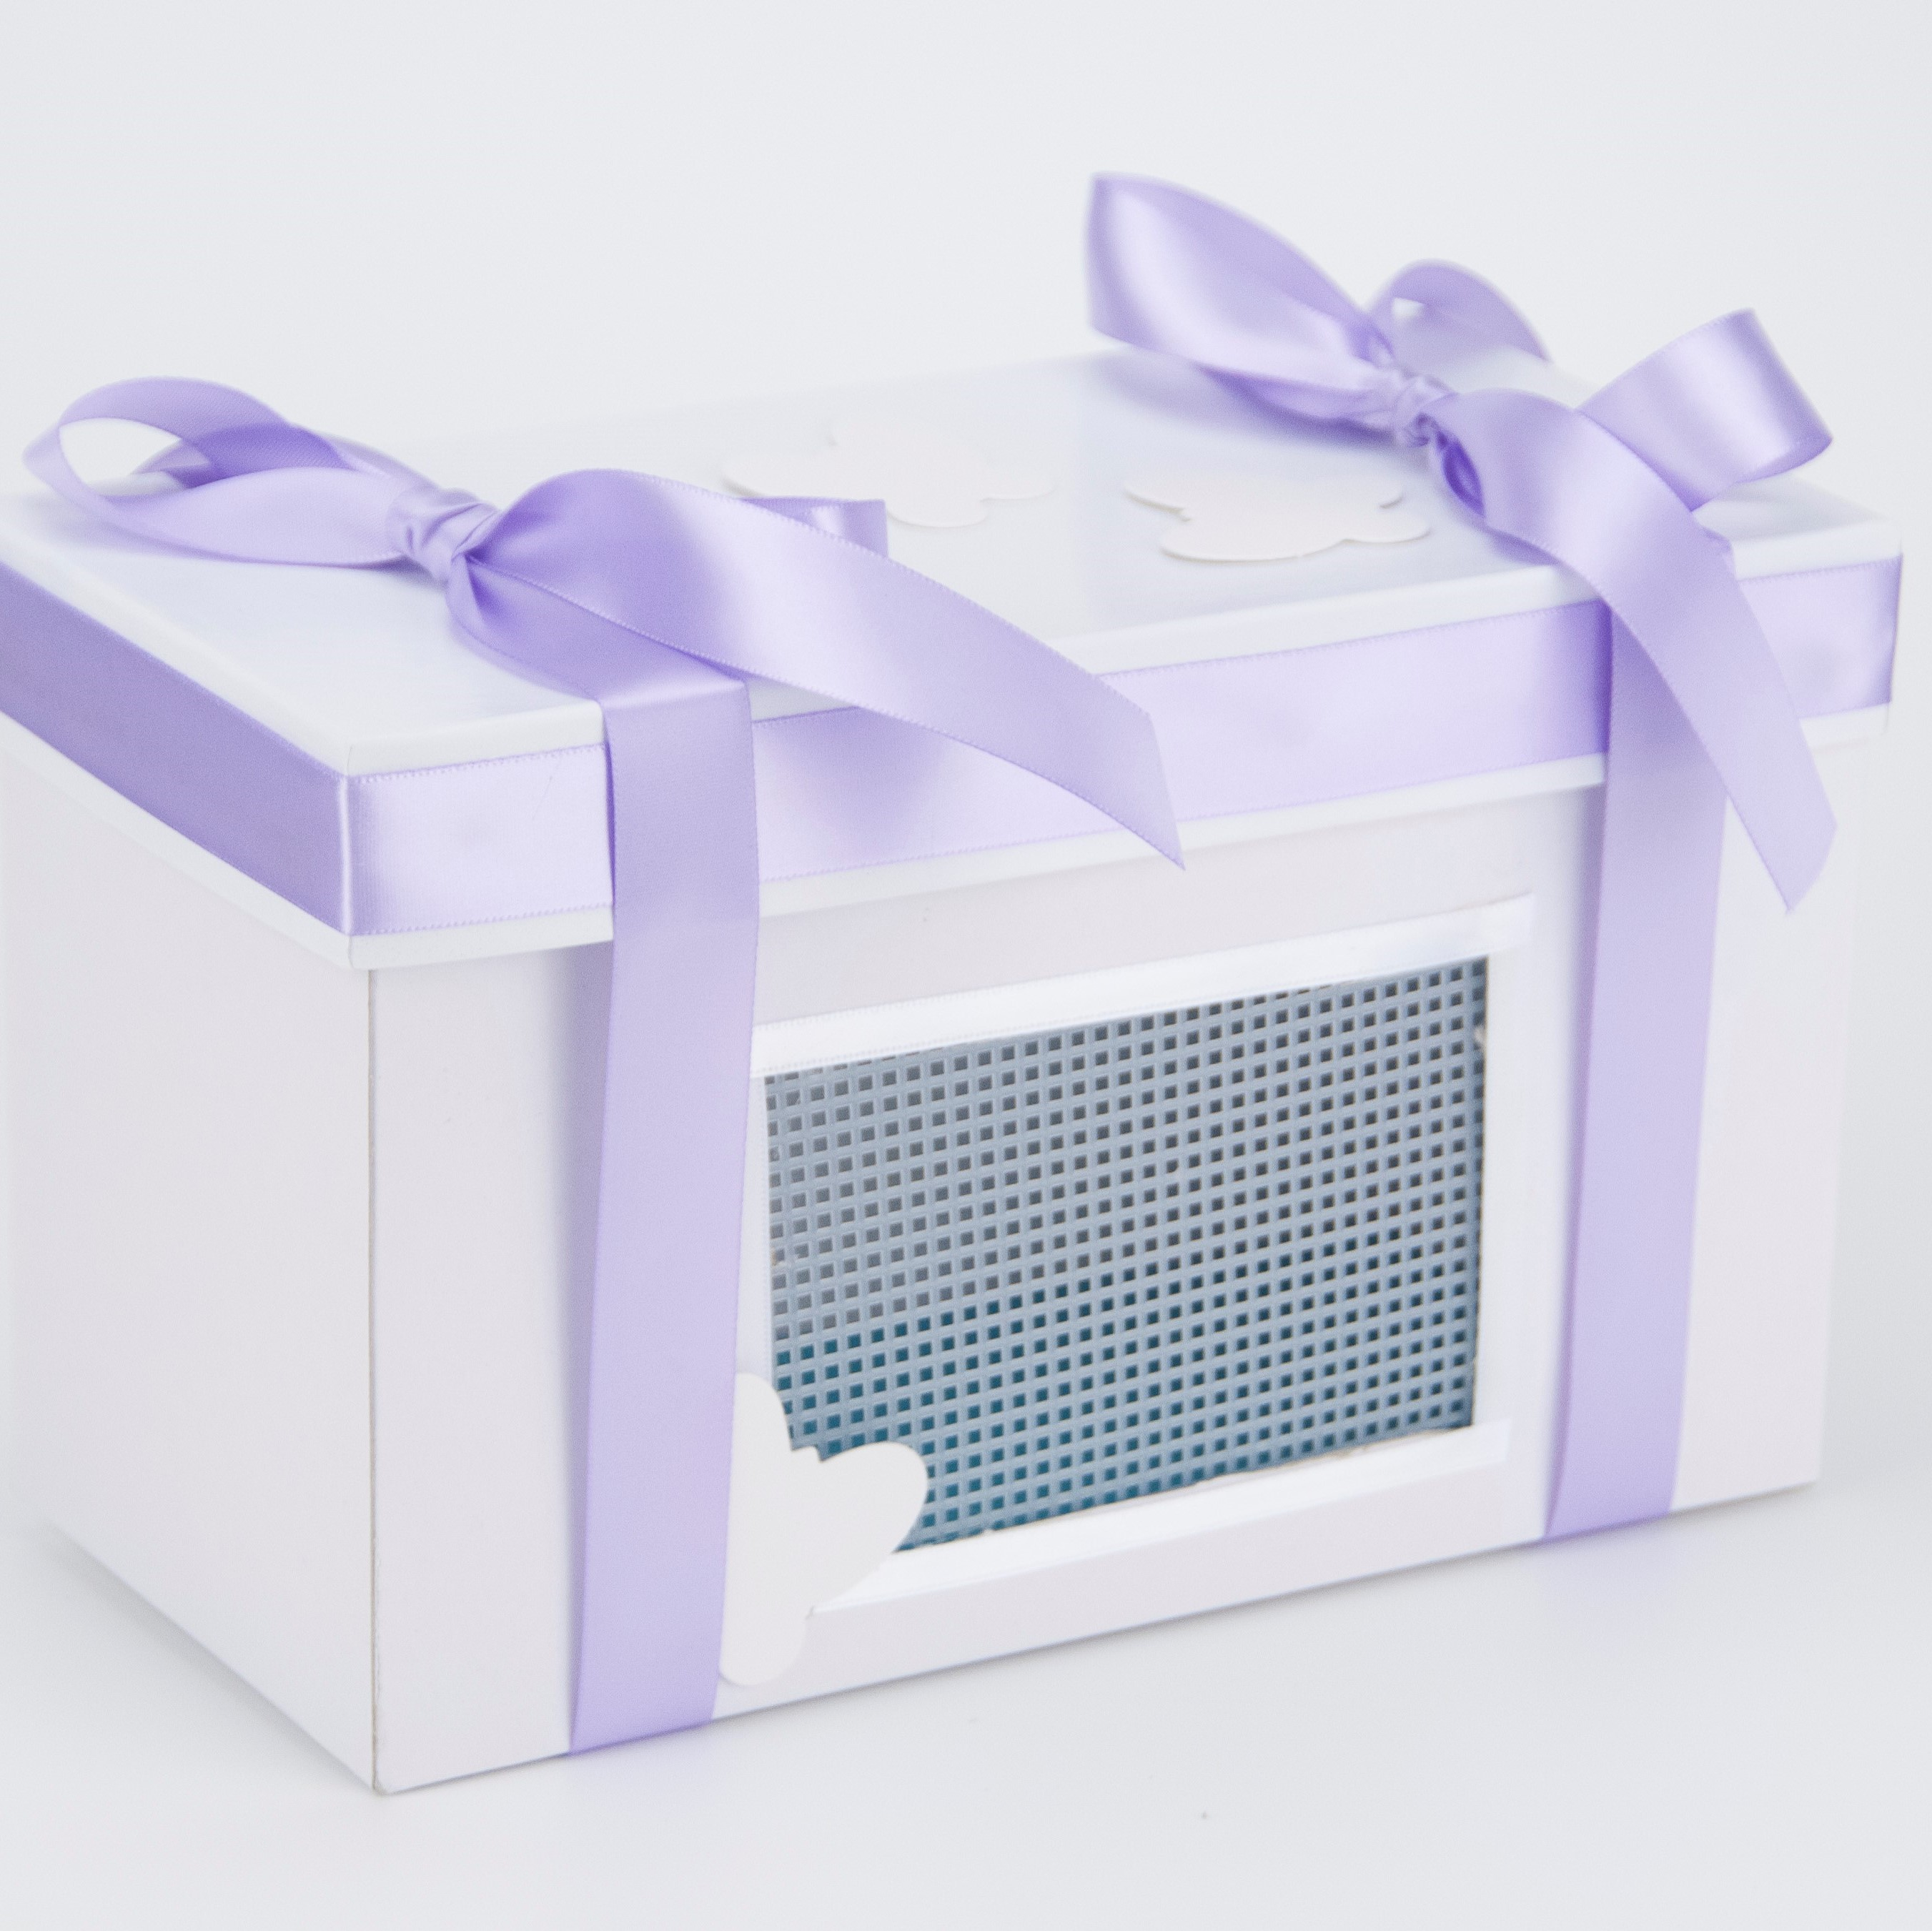 Decorator Box with ribbon only  (butterflies not included) Available as an option with all packages